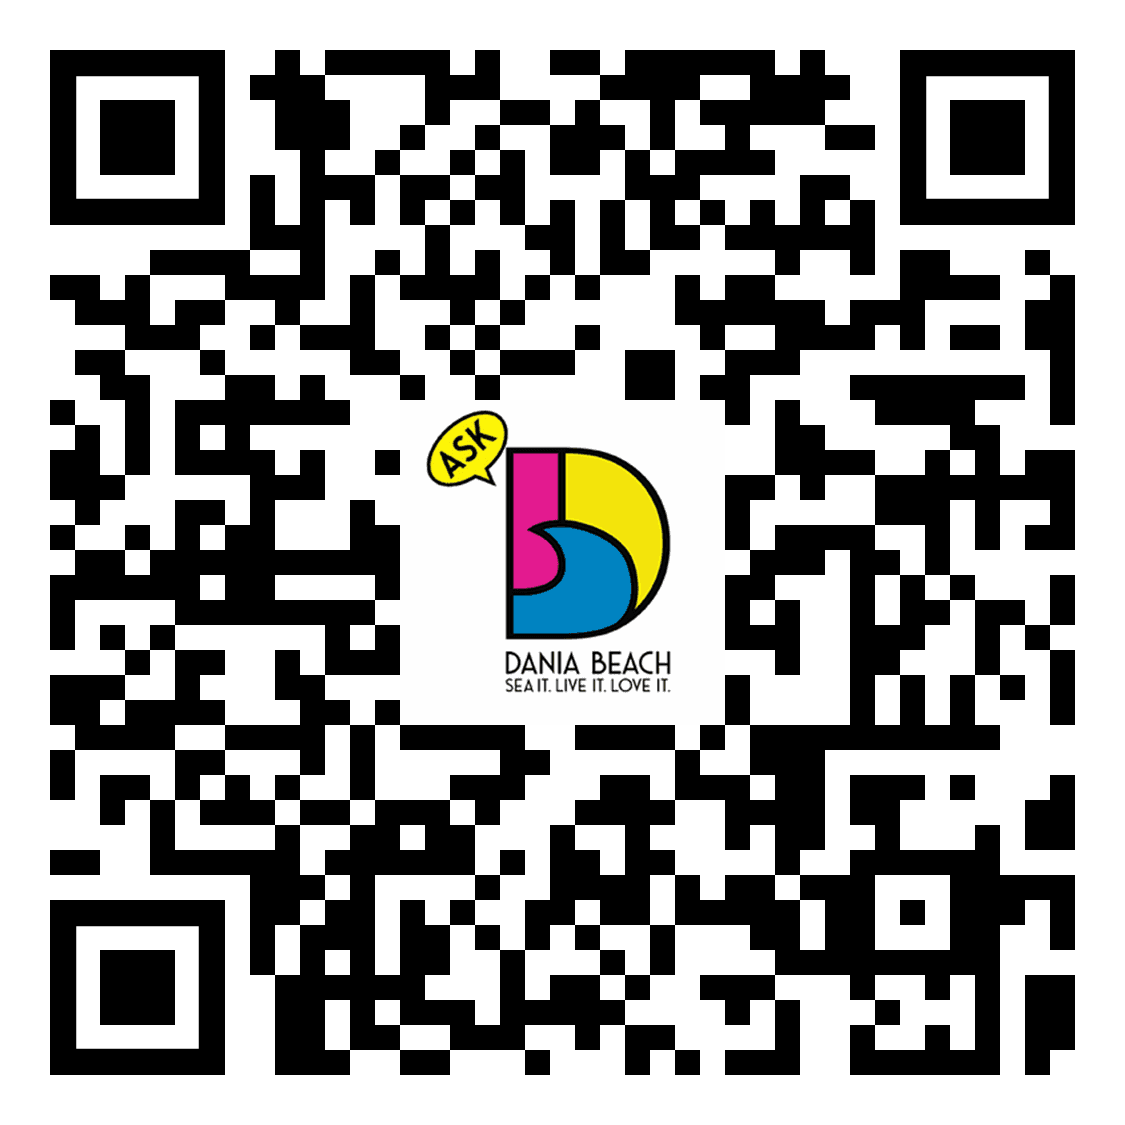 qr-code to ask dania beach apple play store